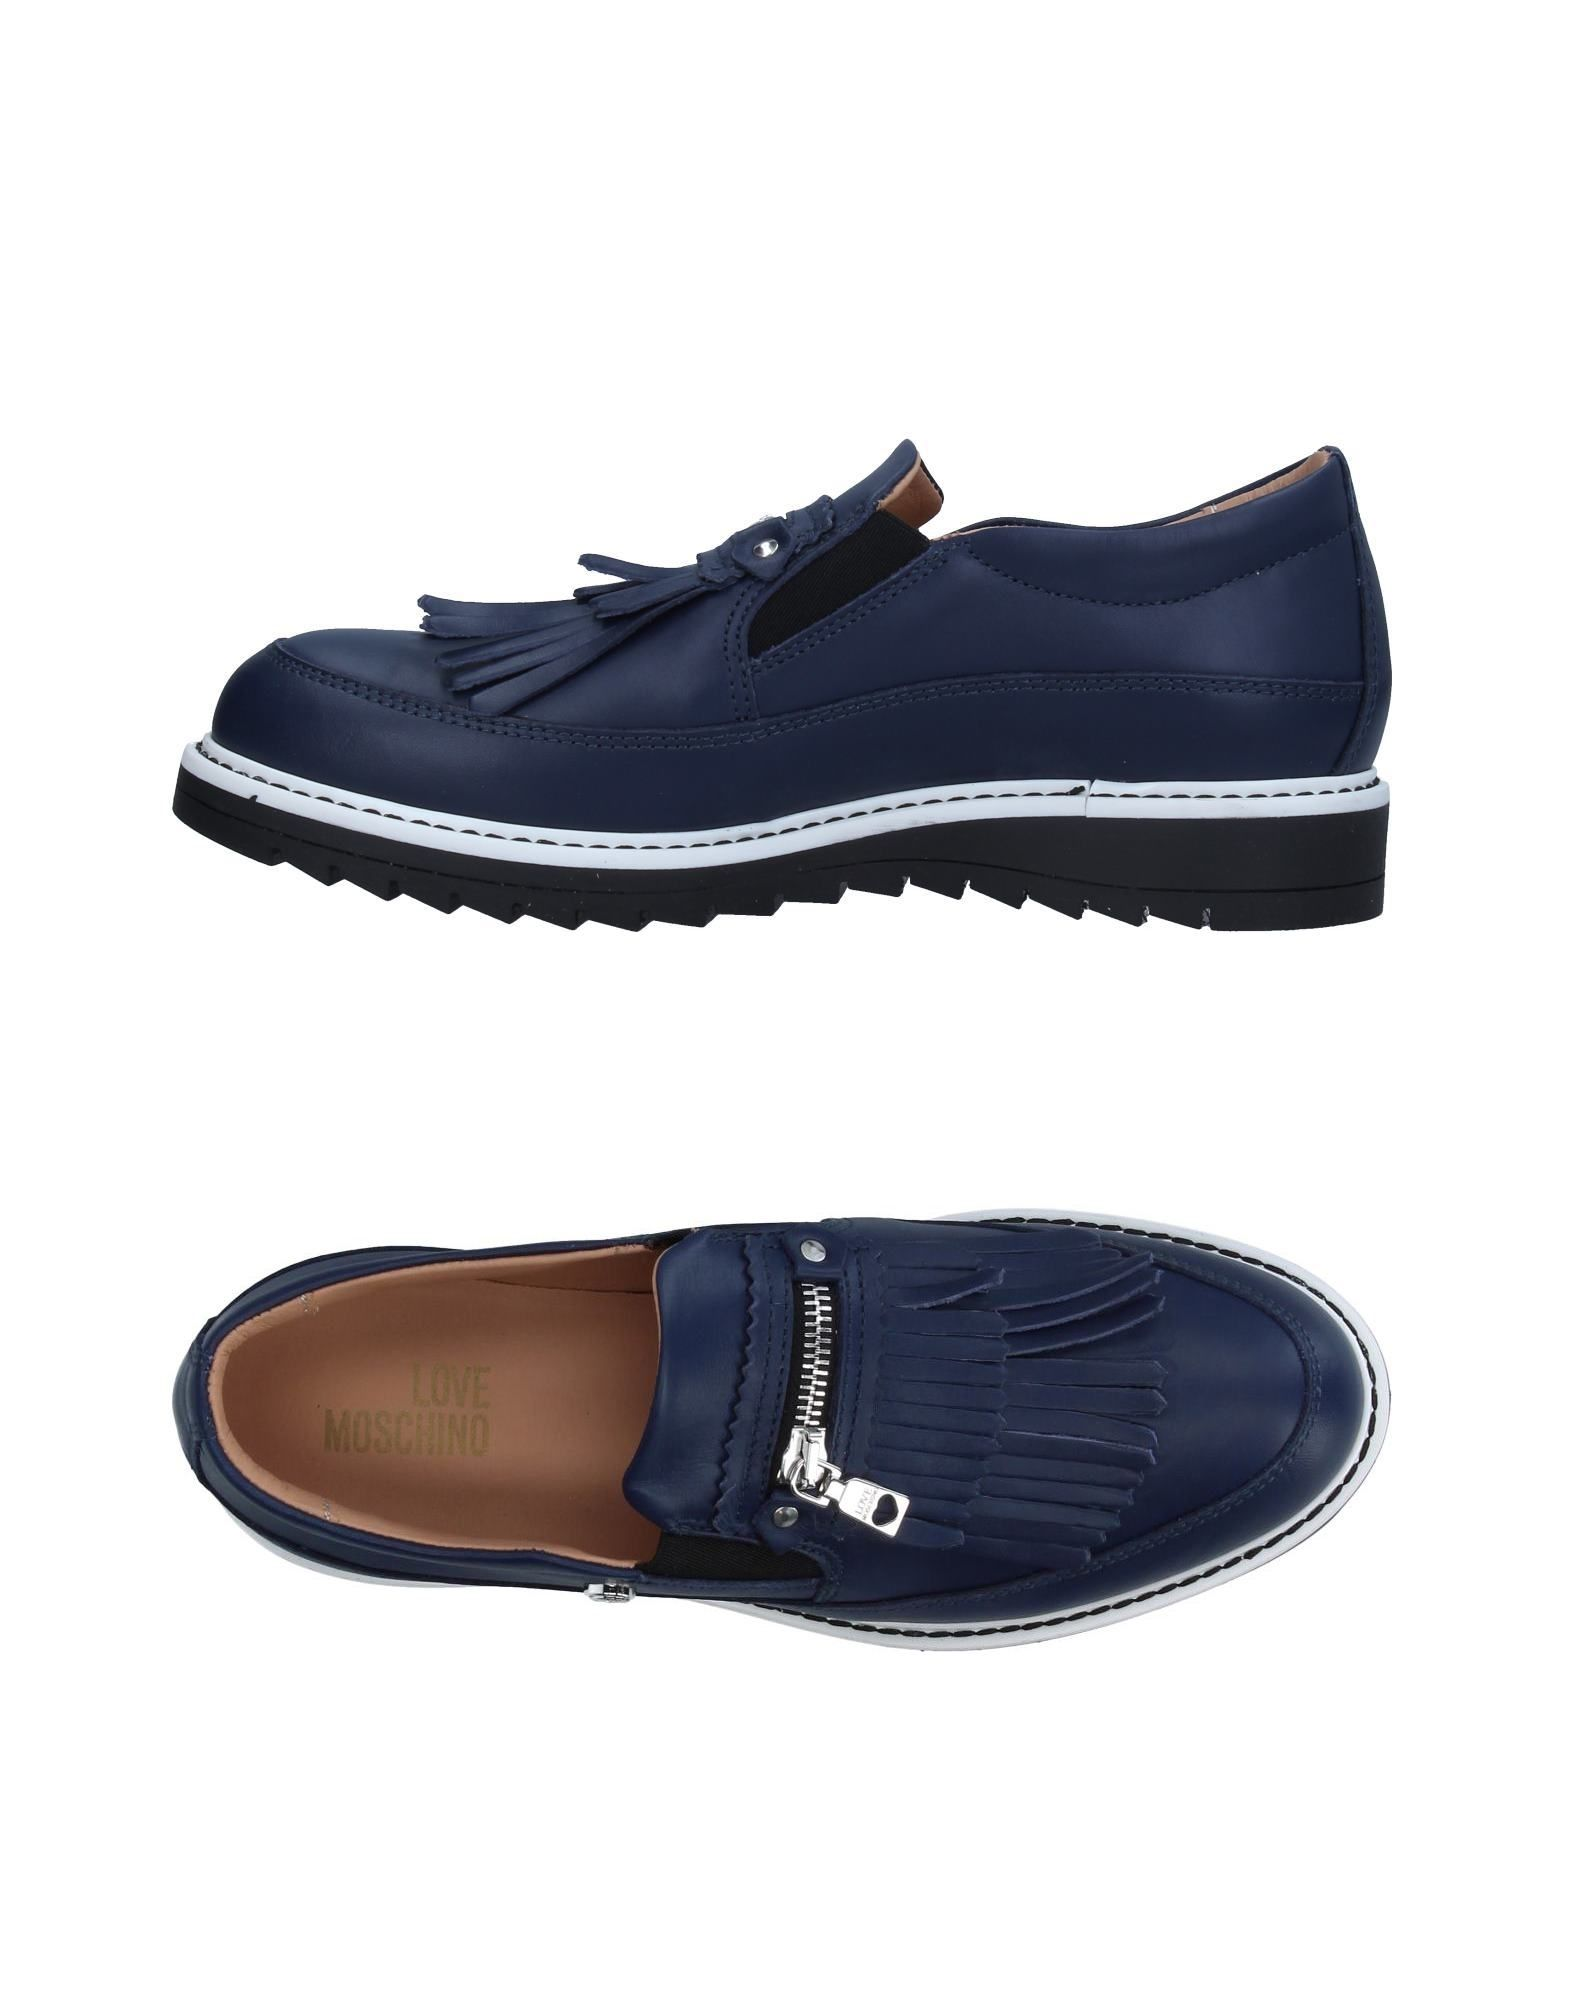 Love Moschino Loafers - Women Love Moschino Loafers online 11326341UV on  Canada - 11326341UV online a2e69e